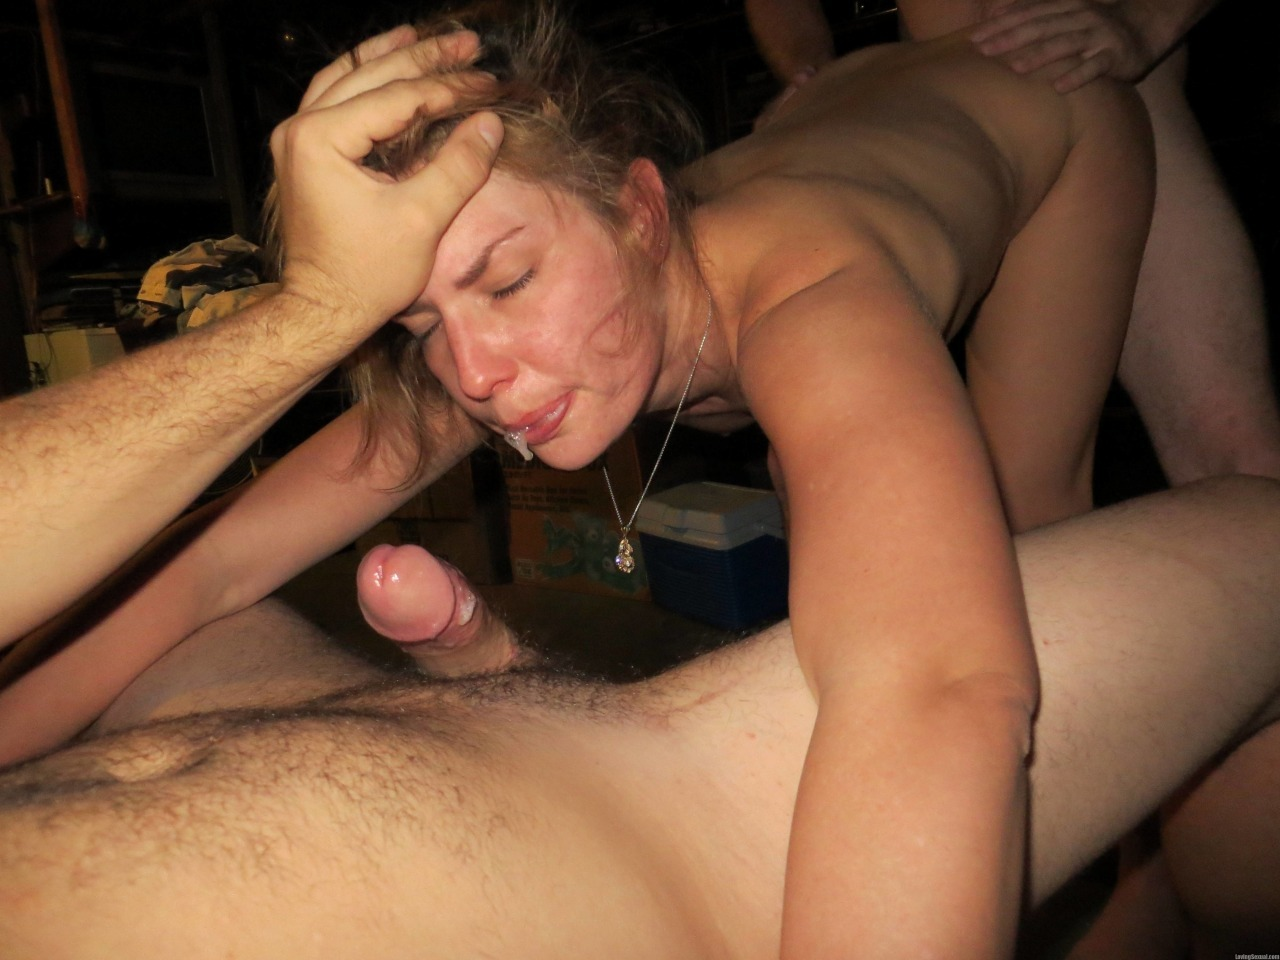 Slut Whore Gangbang Creampie